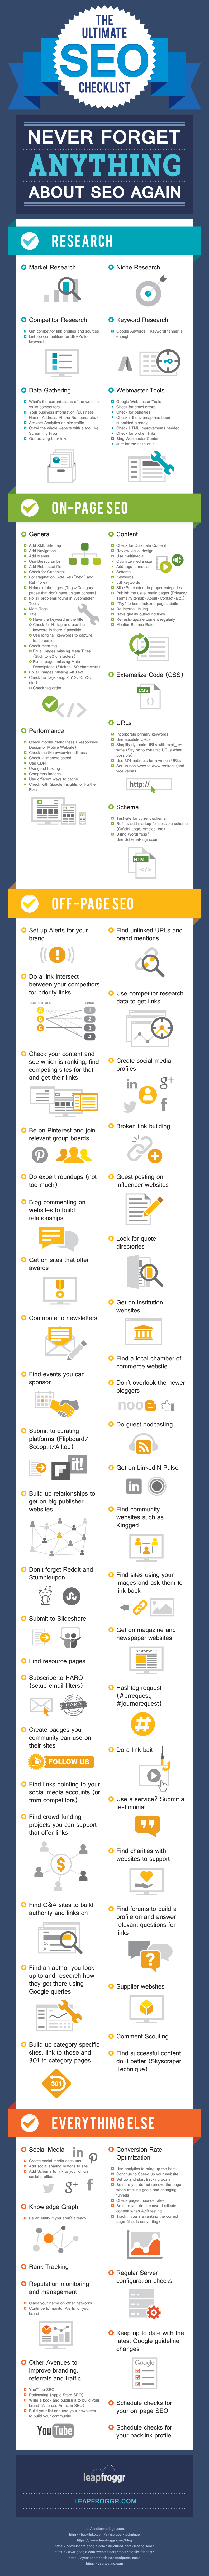 infographie-checklist-seo-ultime